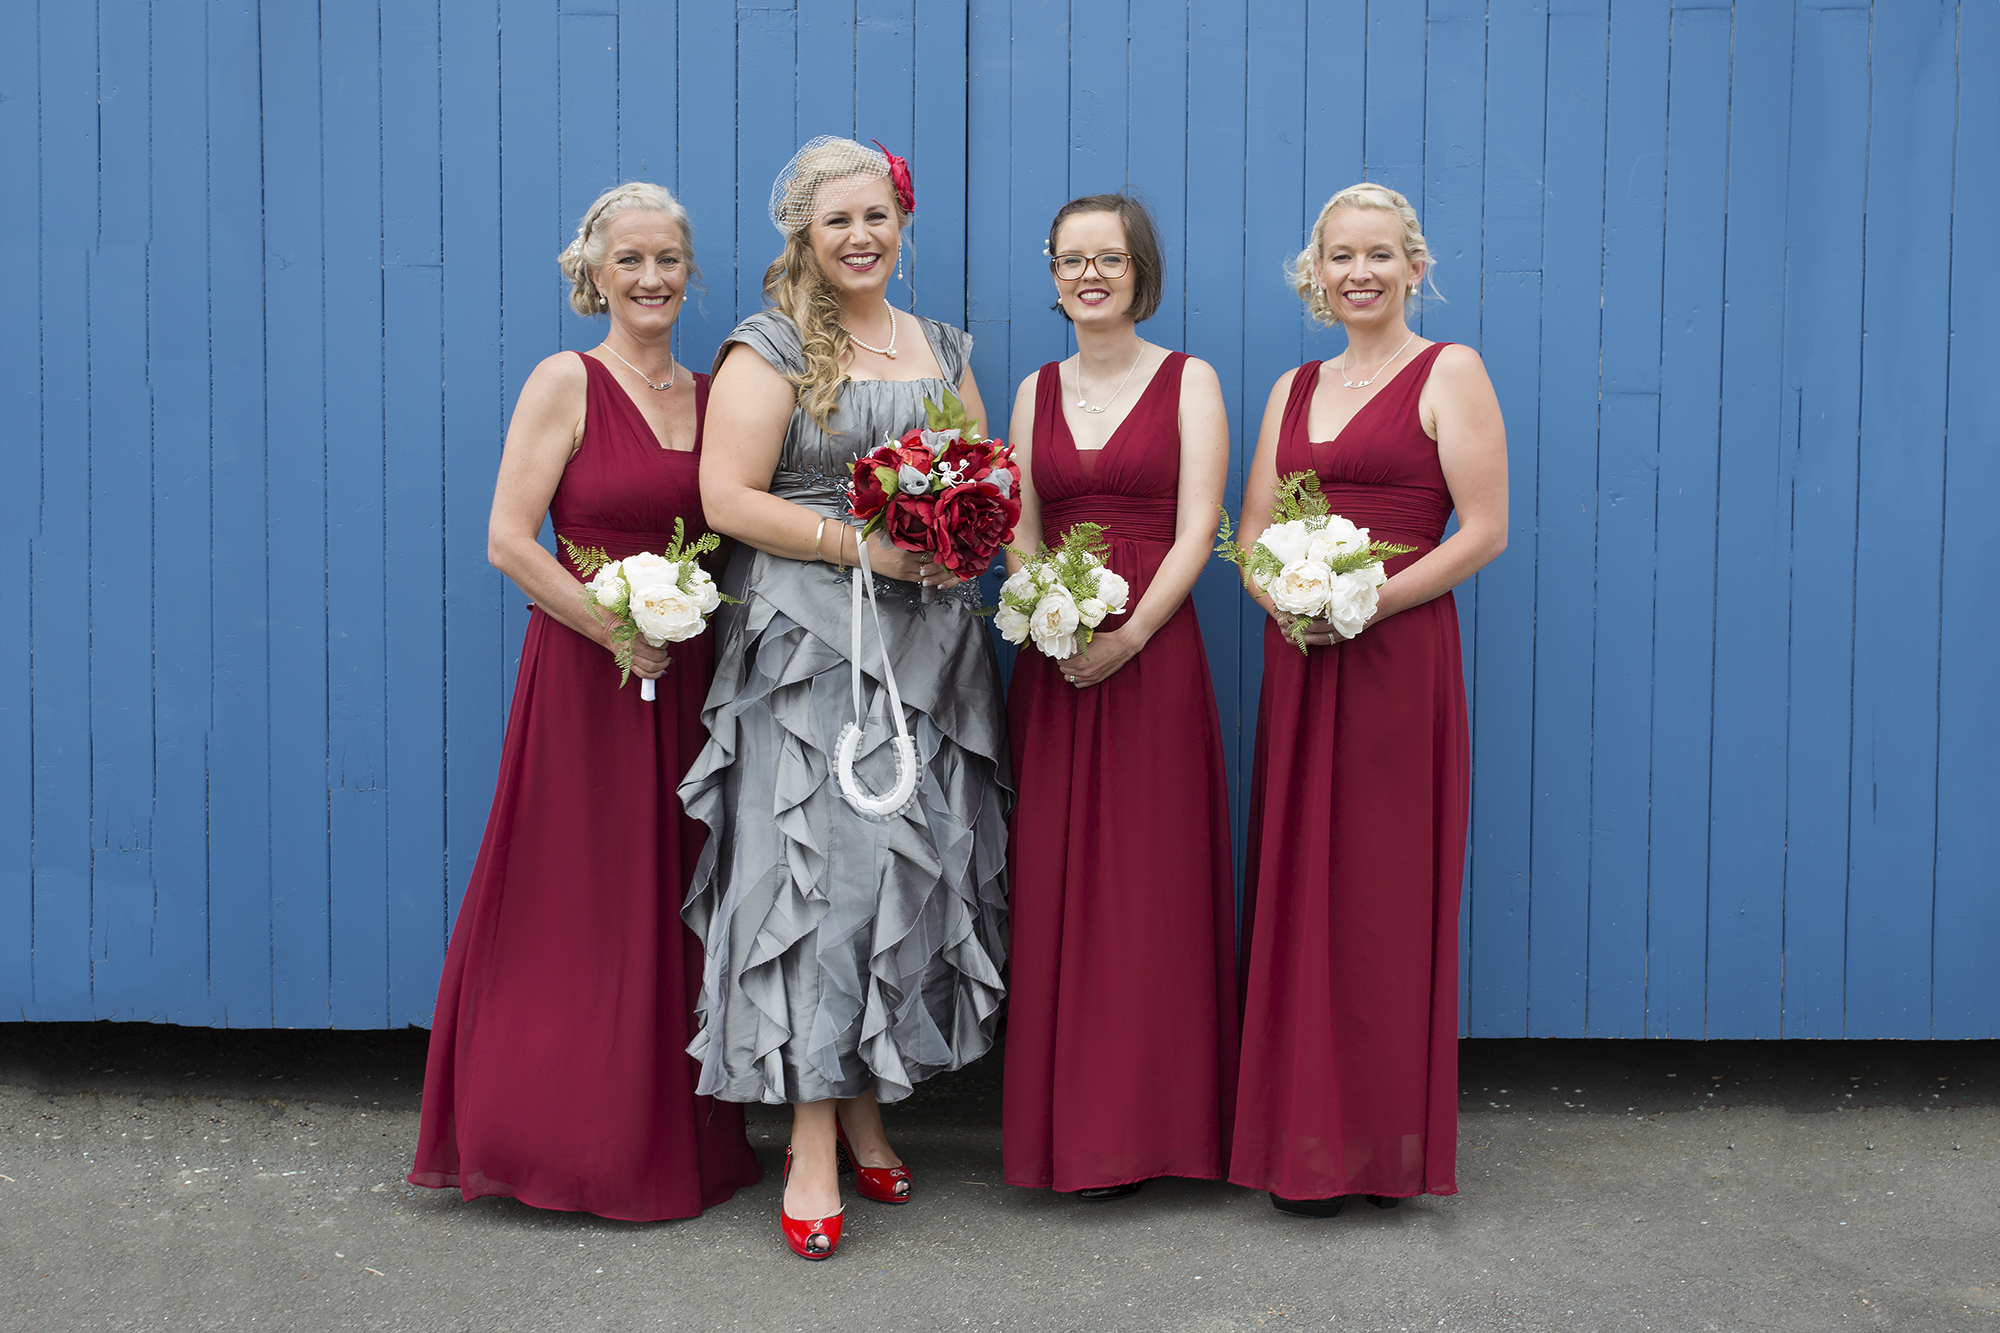 4 Bride and Groom Bridal Party28.jpg